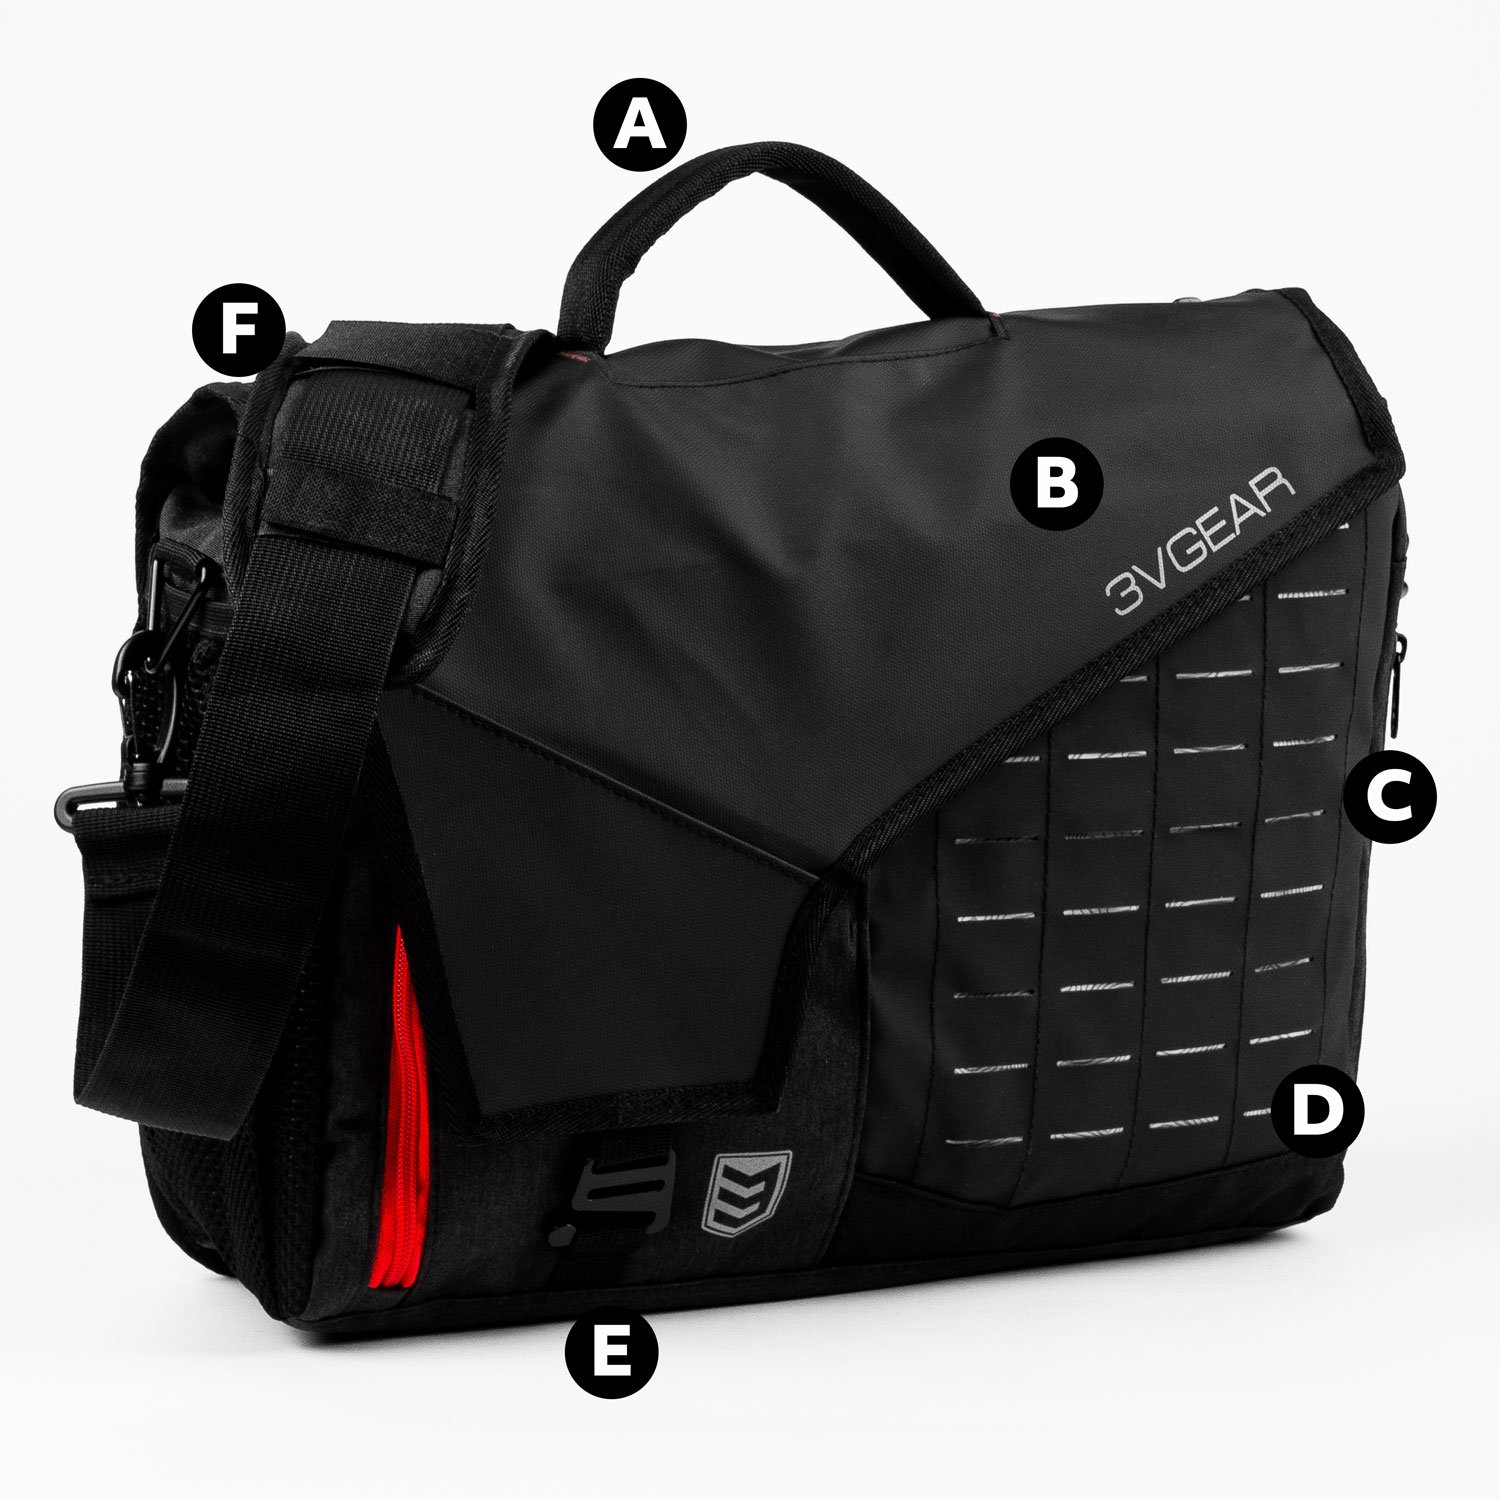 3v gear cipher redline messenger bag